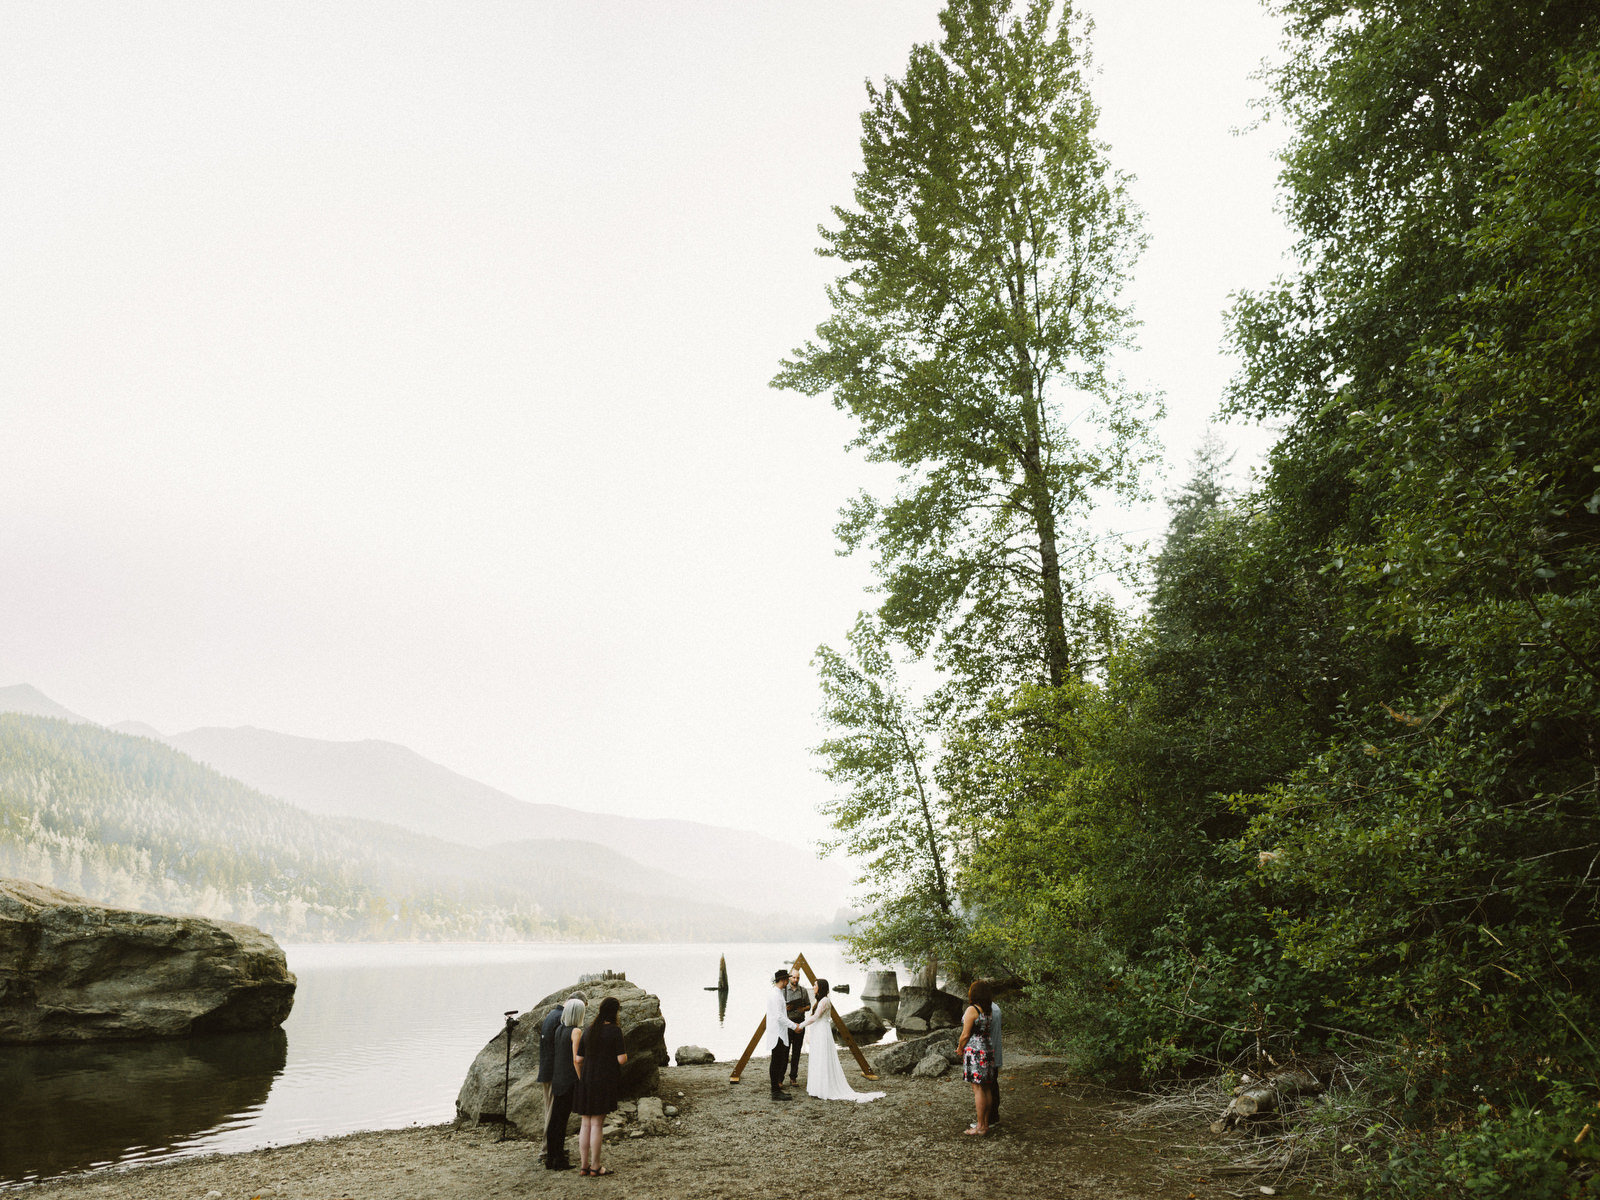 athena-and-camron-seattle-elopement-wedding-benj-haisch-rattlesnake-lake-christian-couple-goals42